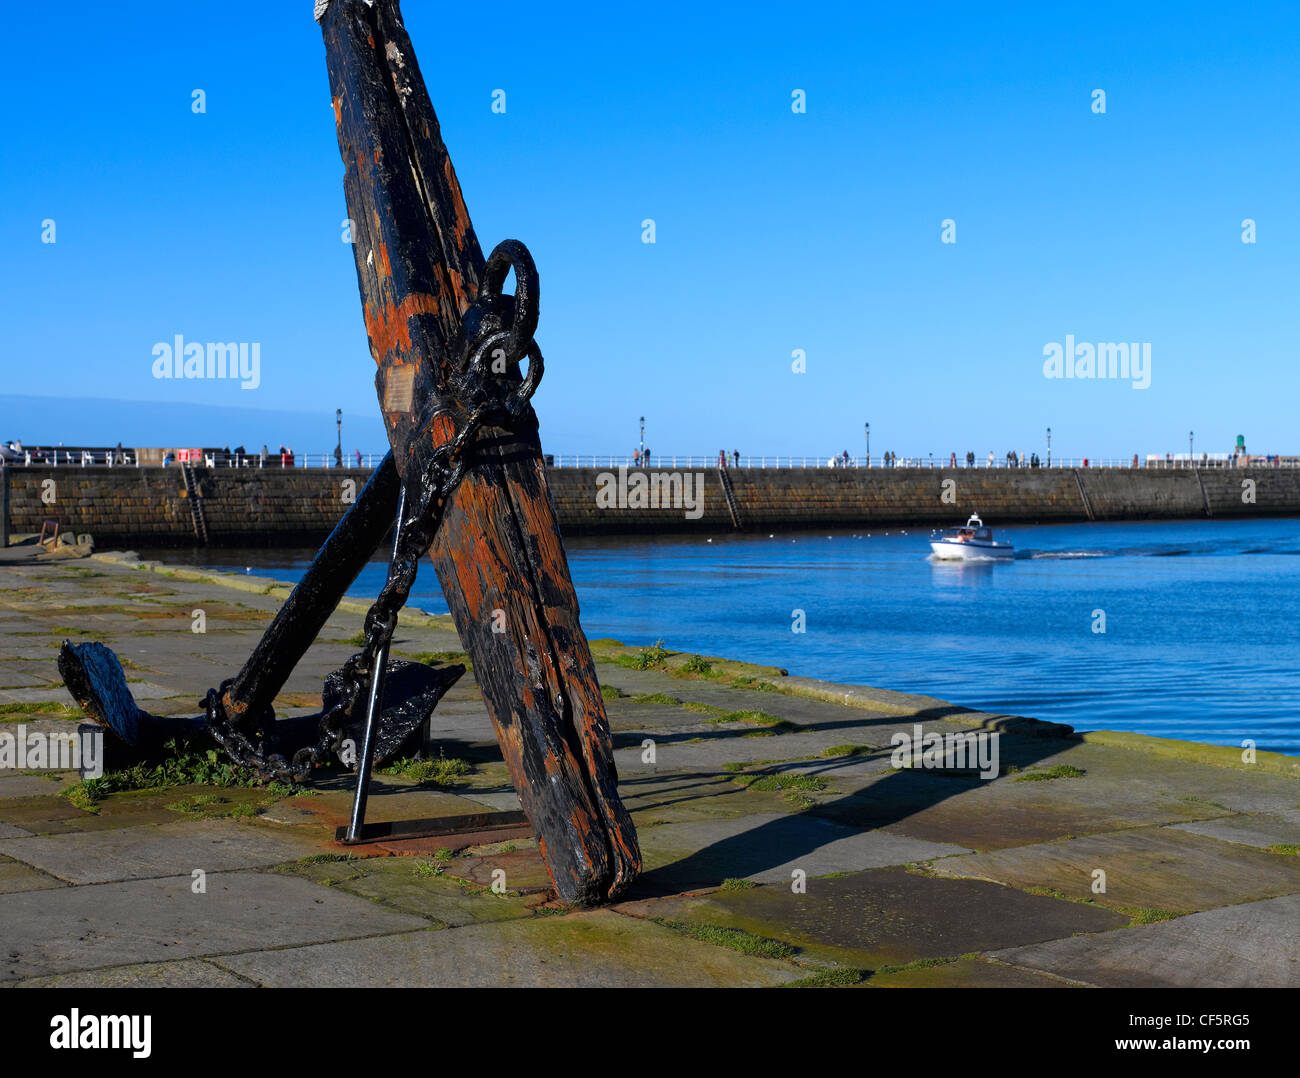 Old wooden stock anchor on the harbour quayside. - Stock Image